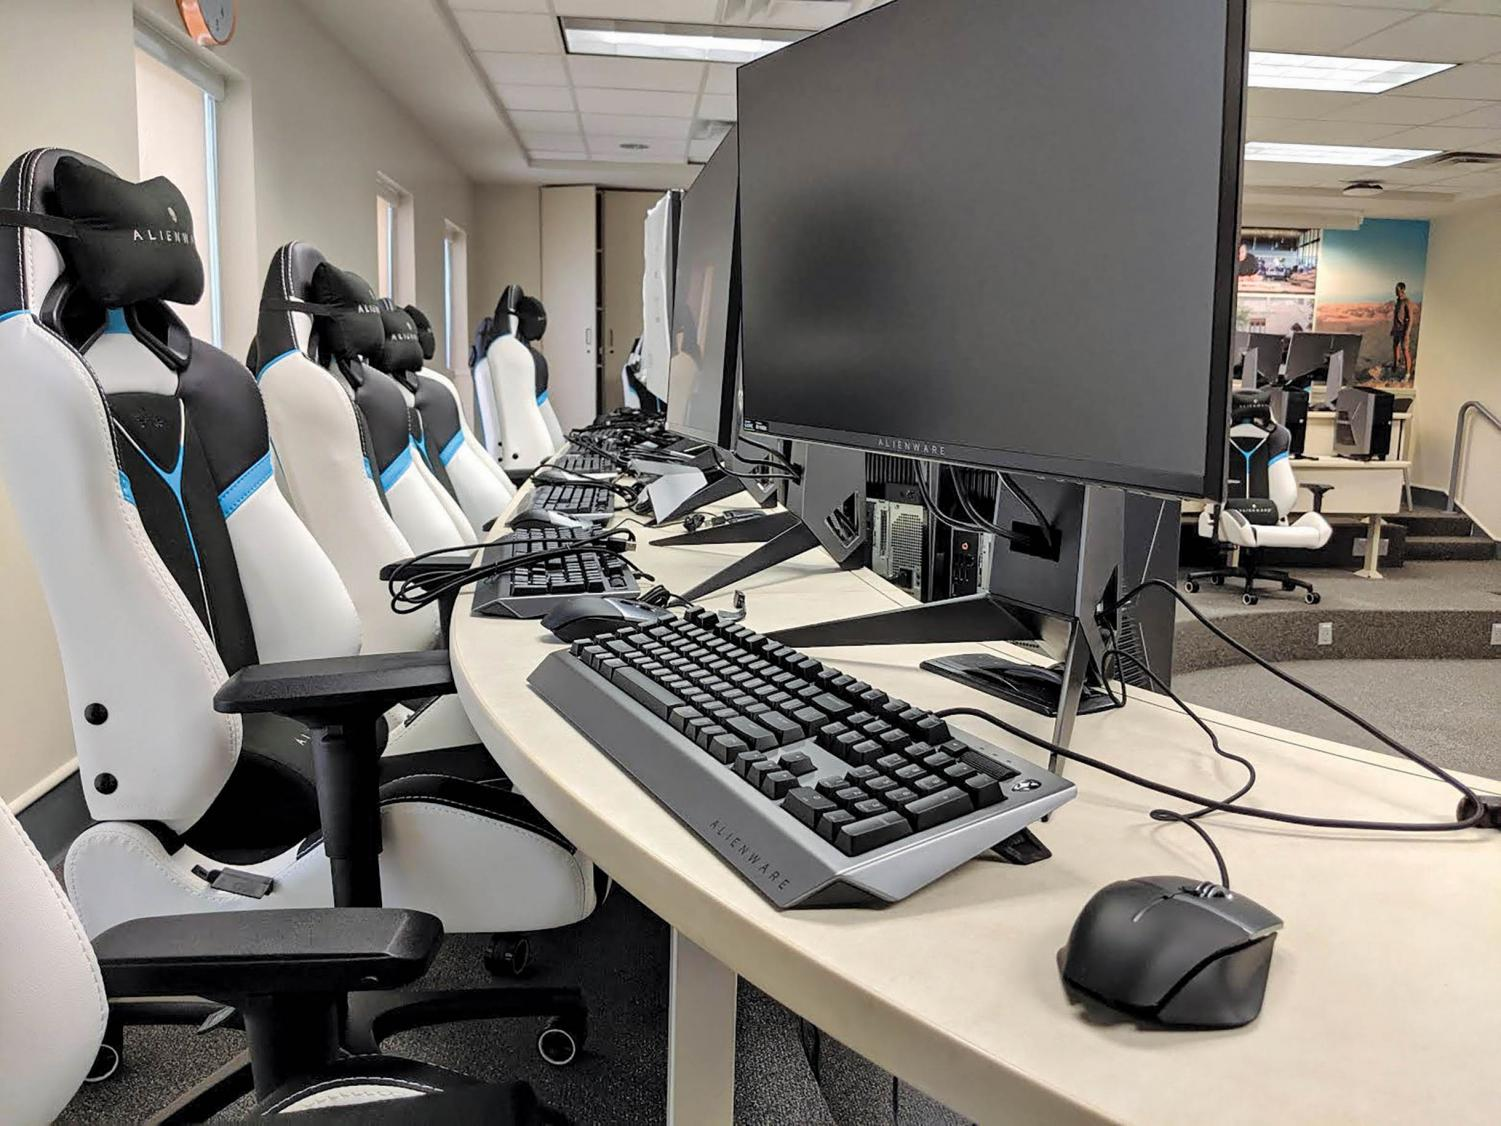 High-tech training facilities stocked with new gaming equipment like monitors and chairs. Gaming competitions are expected to begin in spring of 2020.